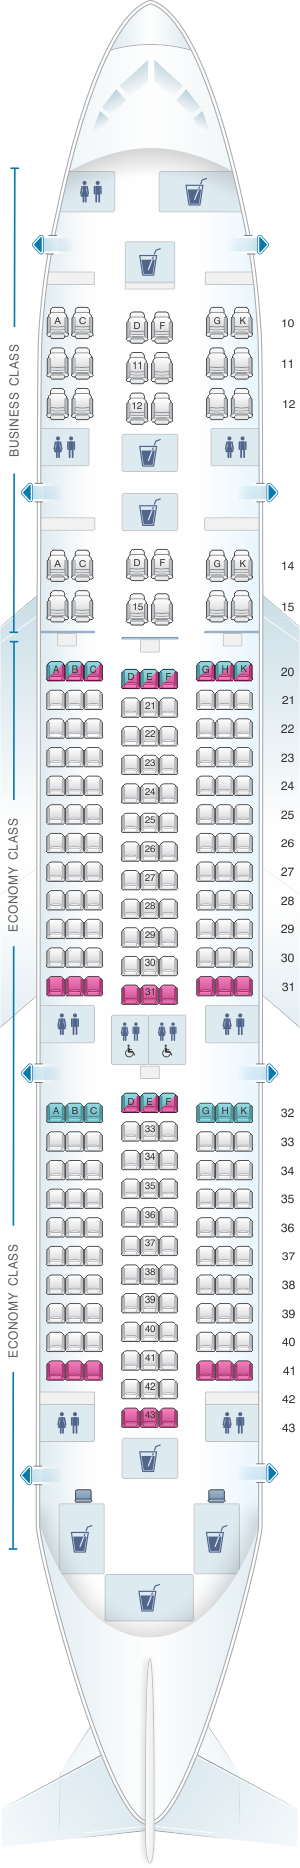 Seat map for Oman Air Boeing B787 8 V2